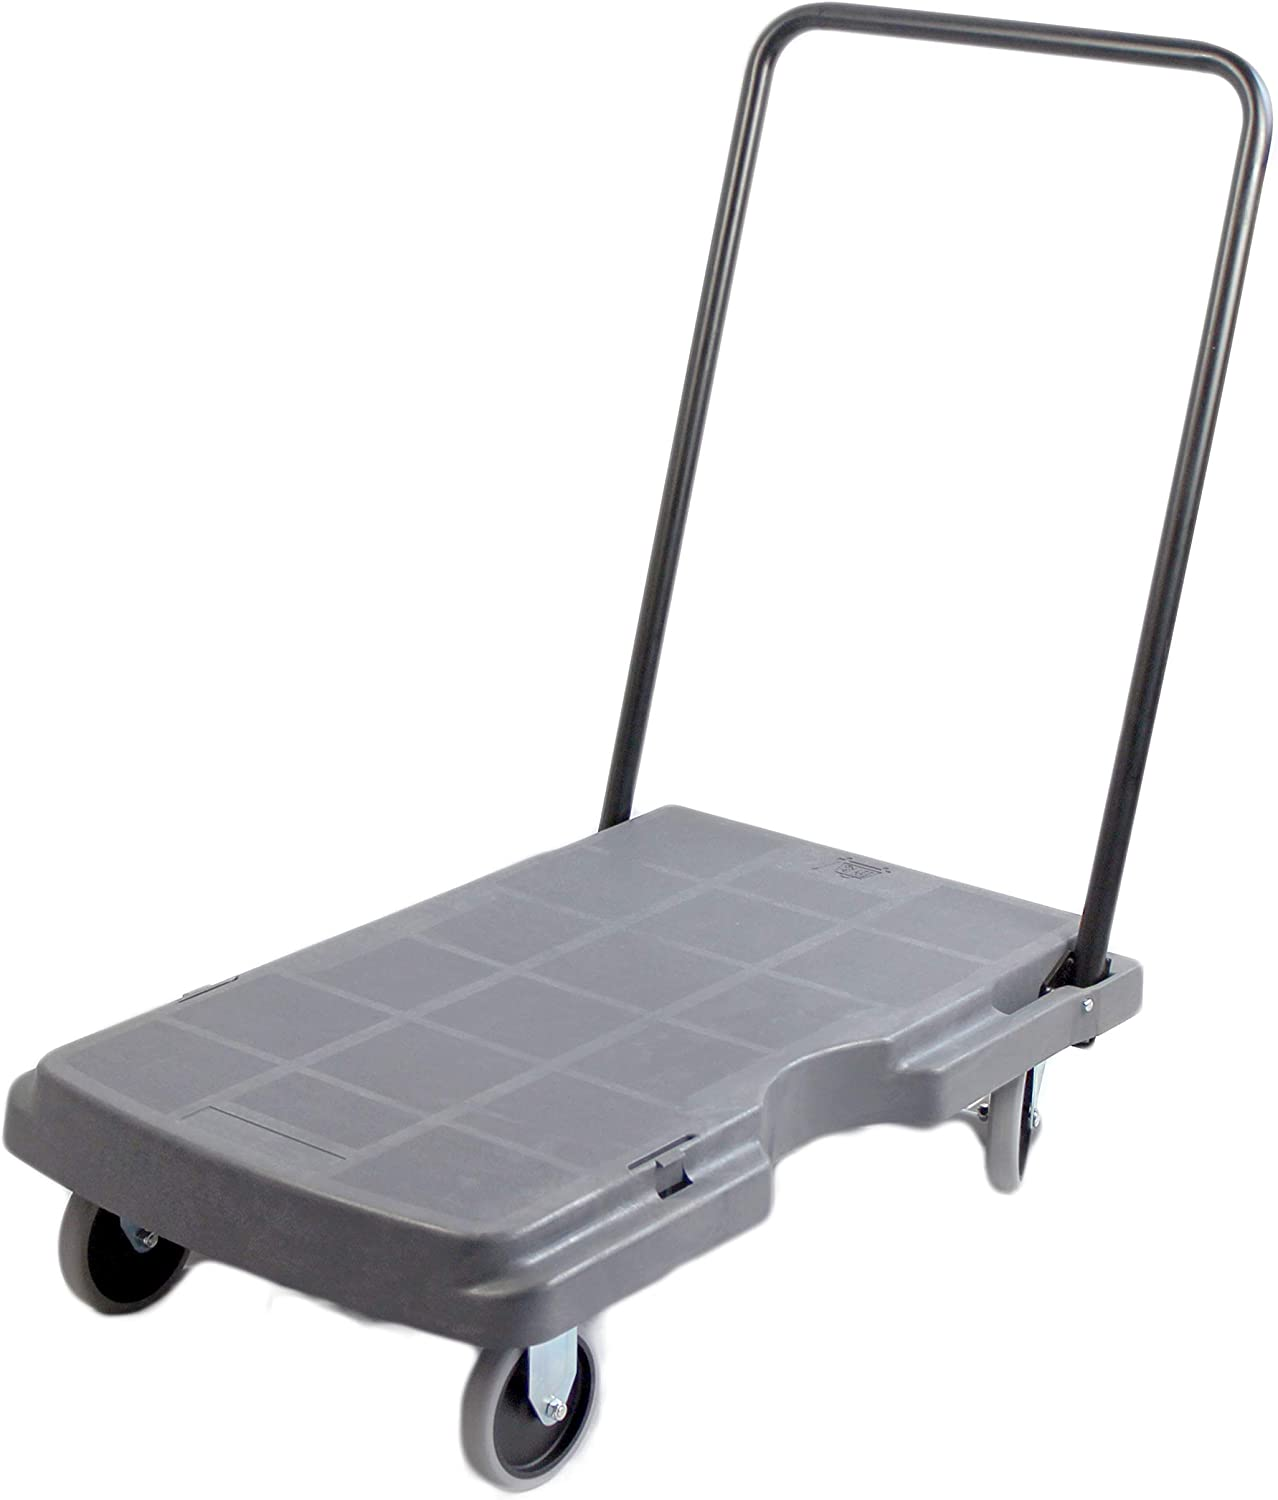 "MaxWorks 80856 30"" x 20"" Polypropylene Dolly with Foldable Handle, 1 Pack"